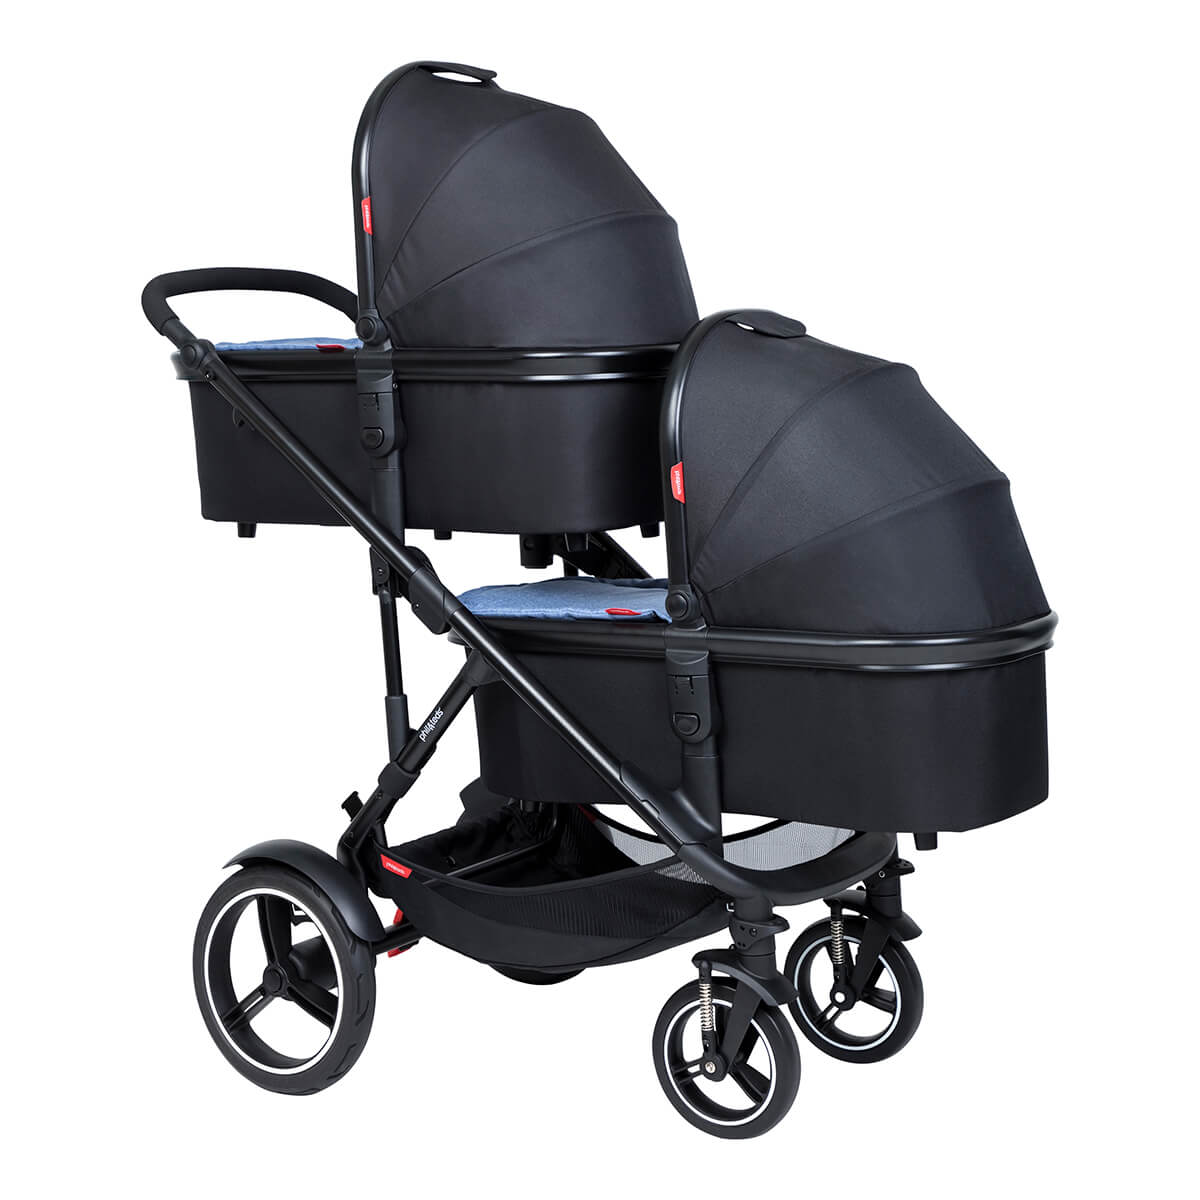 https://cdn.accentuate.io/4513464516704/19440099983544/philteds-voyager-inline-buggy-with-double-snug-carrycots-v1633401128931.jpg?1200x1200